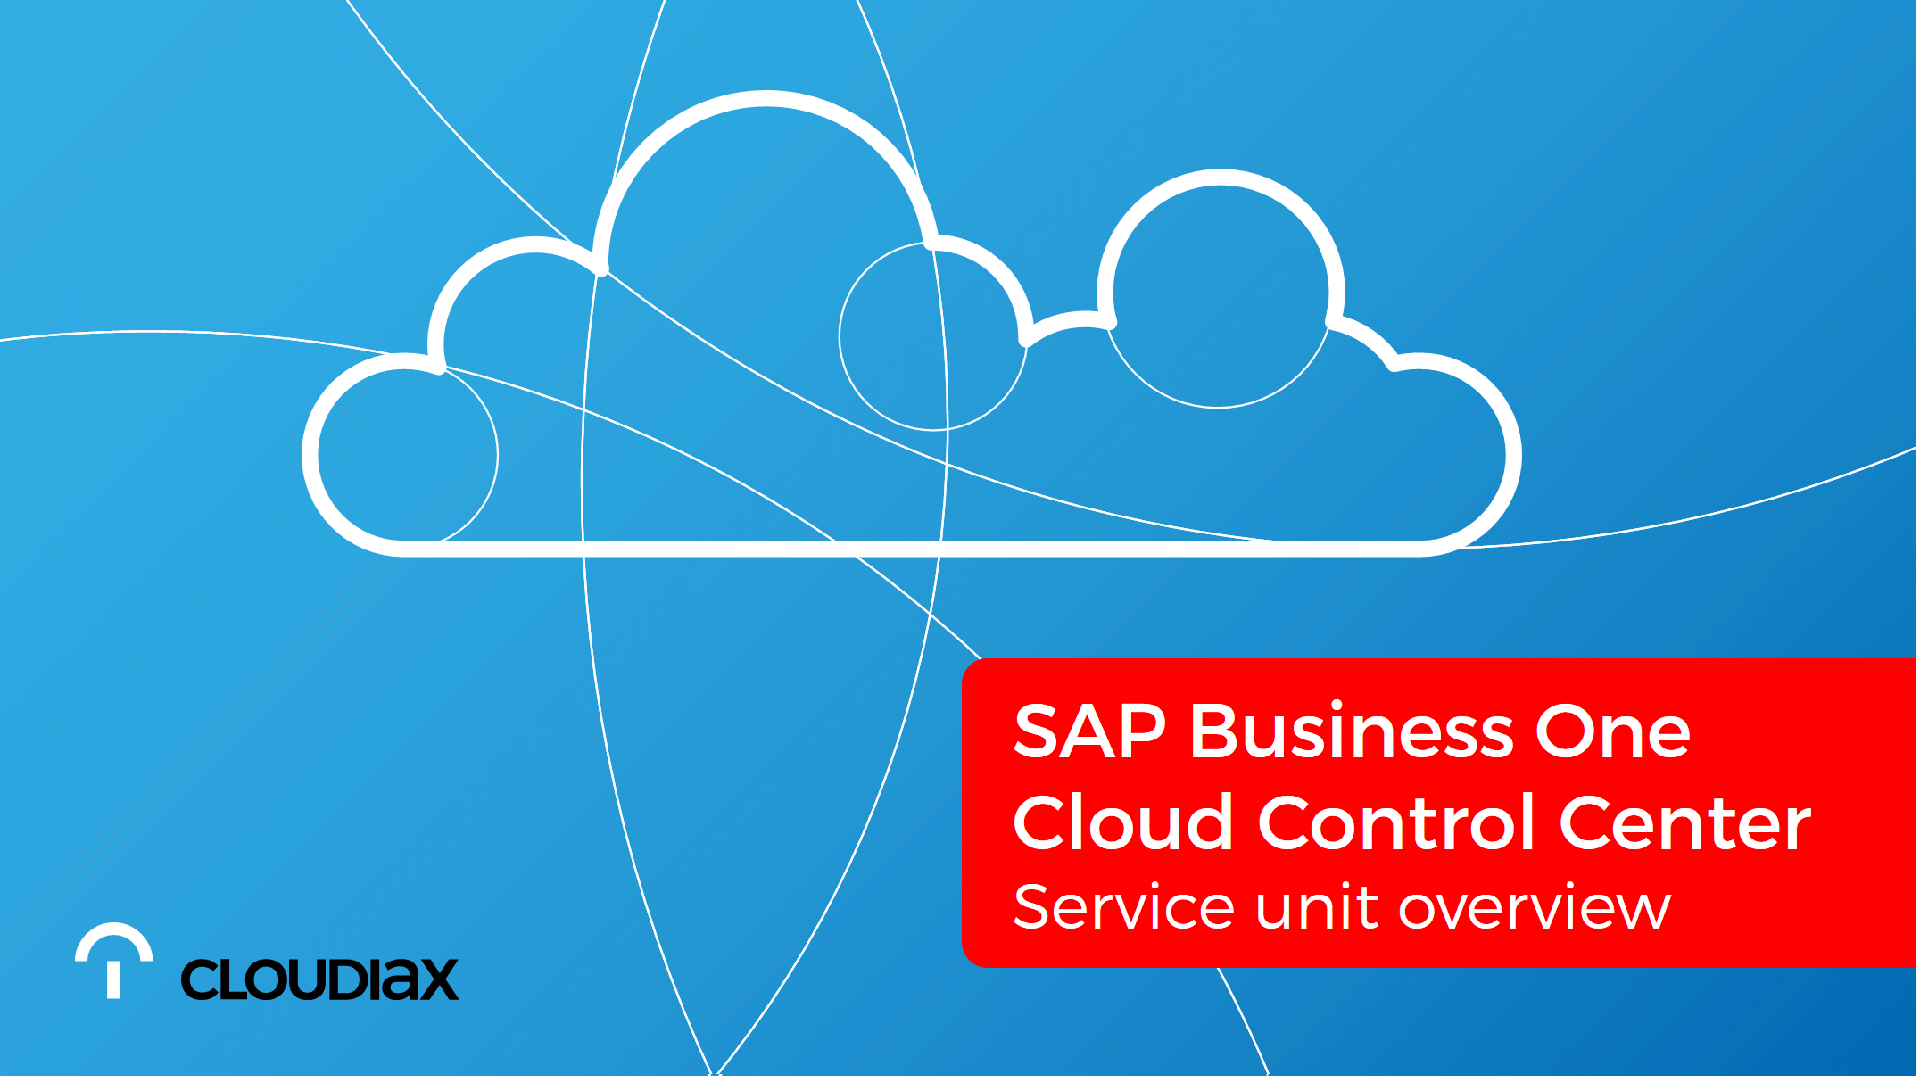 SAP Business One Cloud Control Center - Service unit overview